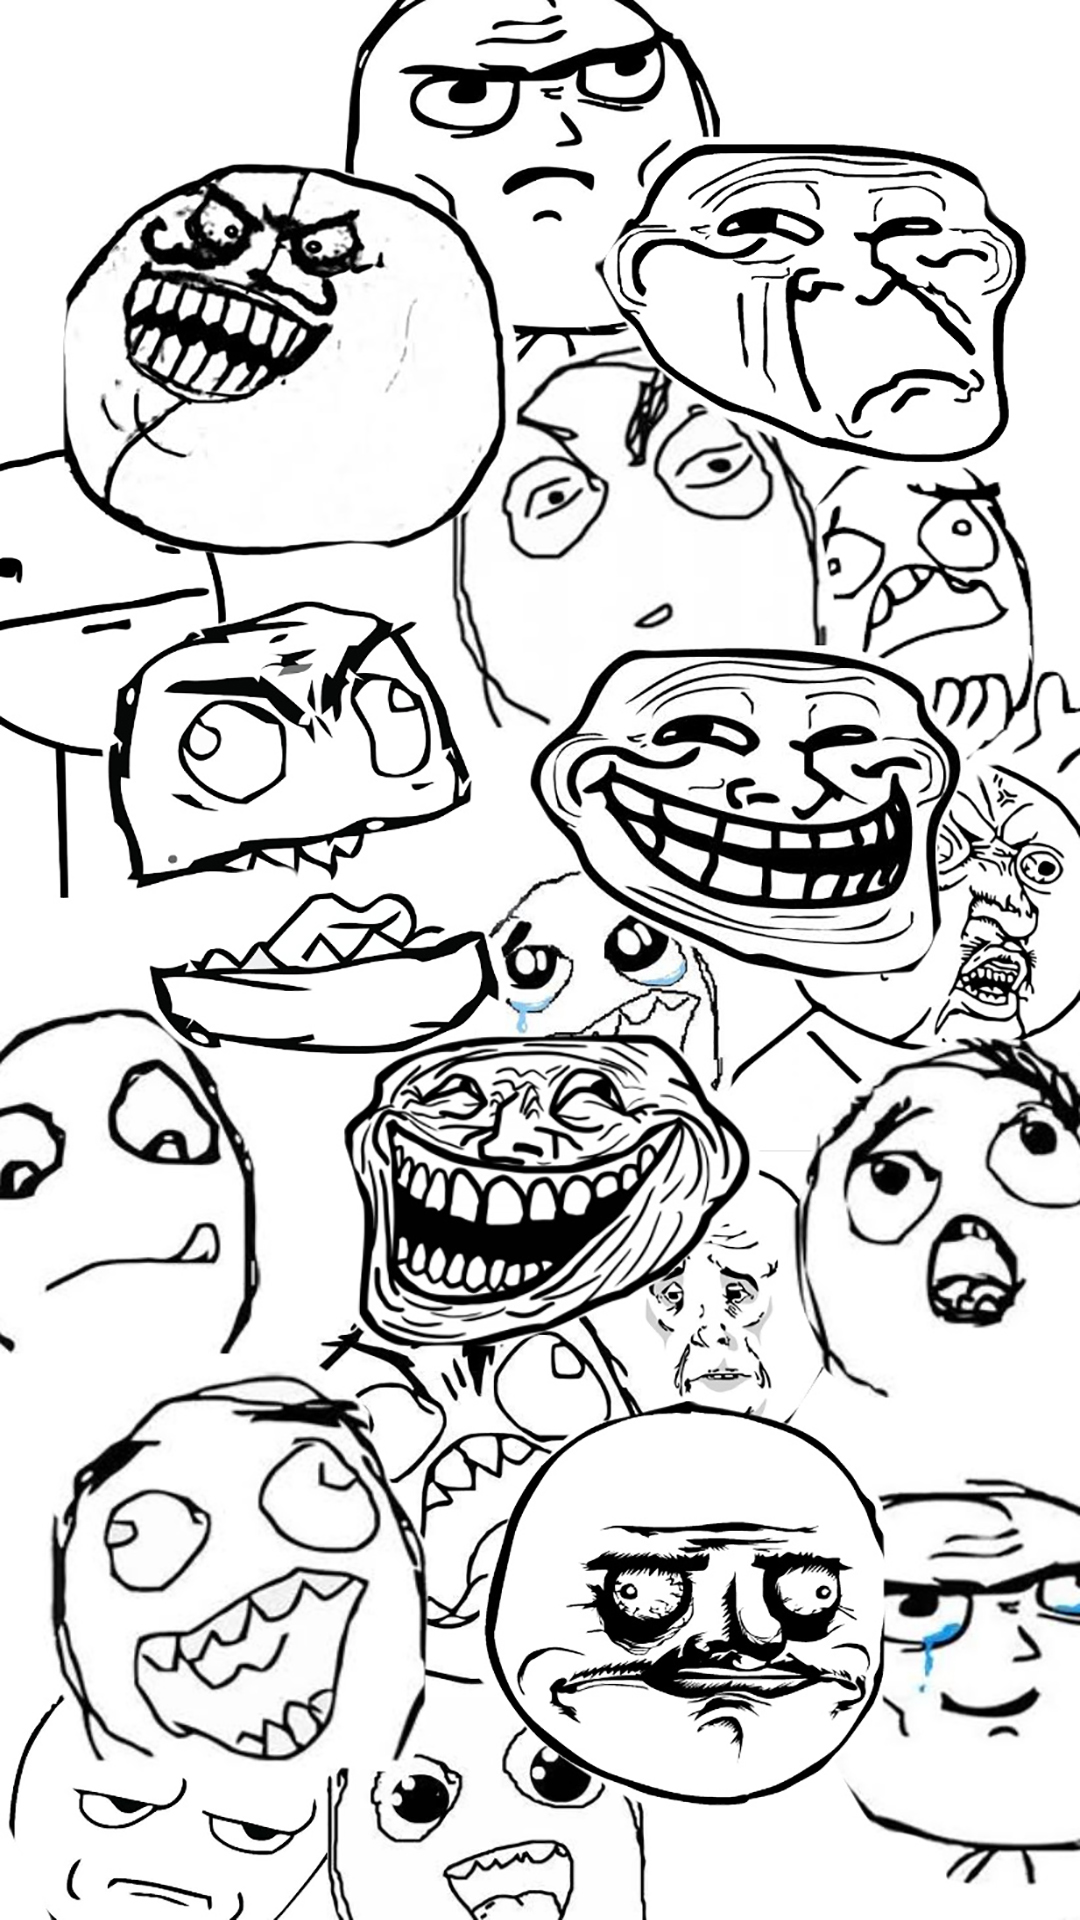 Troll Face Wallpapers Free Download